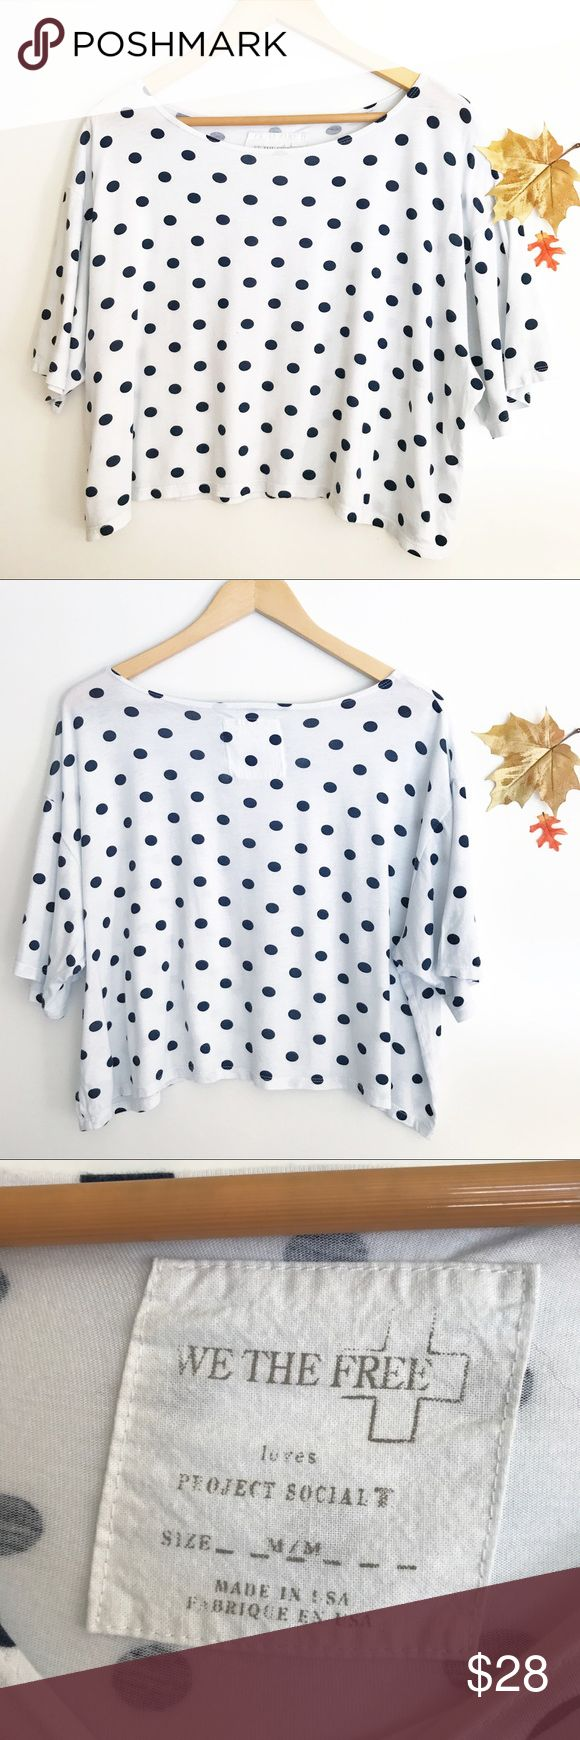 "Free People We White Navy Polka Dot Tshirt Medium Free People (We The Free) oversized boxy Tshirt, white with navy blue polka dots. Gently pre-owned, no flaws. Size Medium. Underarm to underarm: 25"" Length, shoulder to hem: 18"" (Inventory I18) Free People Tops Tees - Short Sleeve"